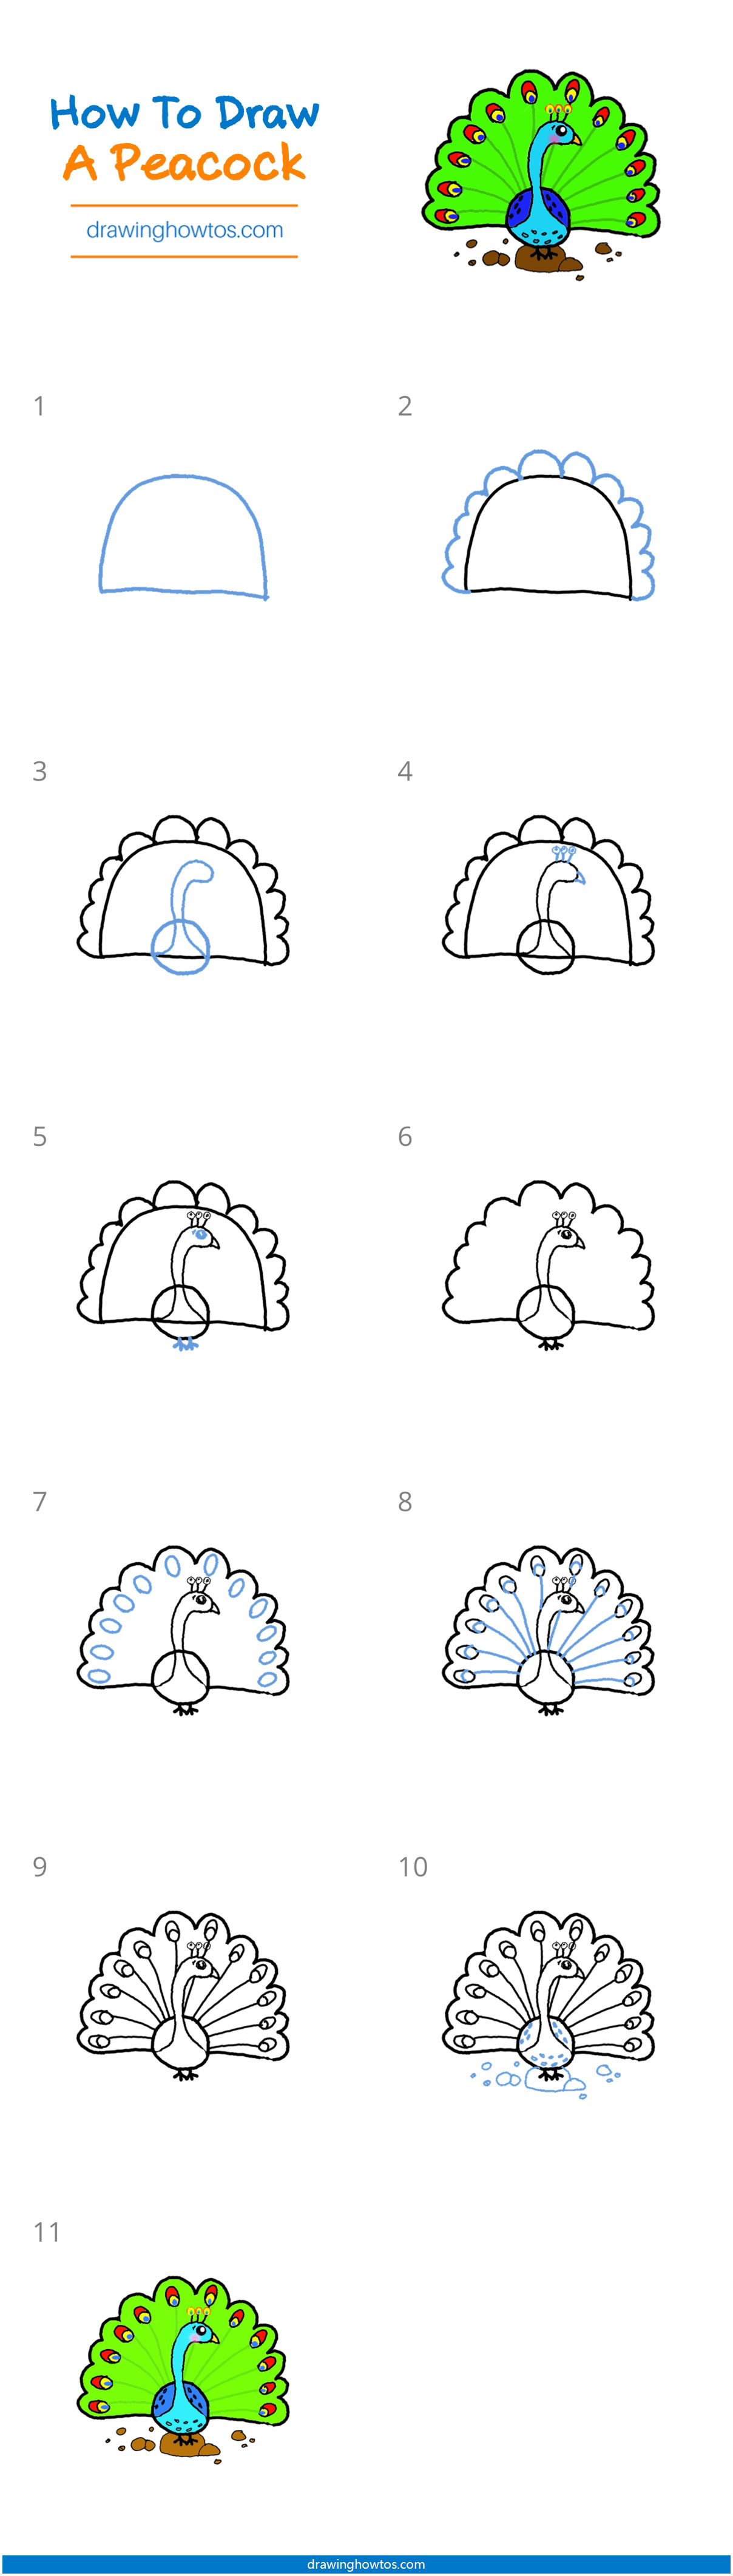 How to Draw a Peacock - Step by Step Easy Drawing Guides ...